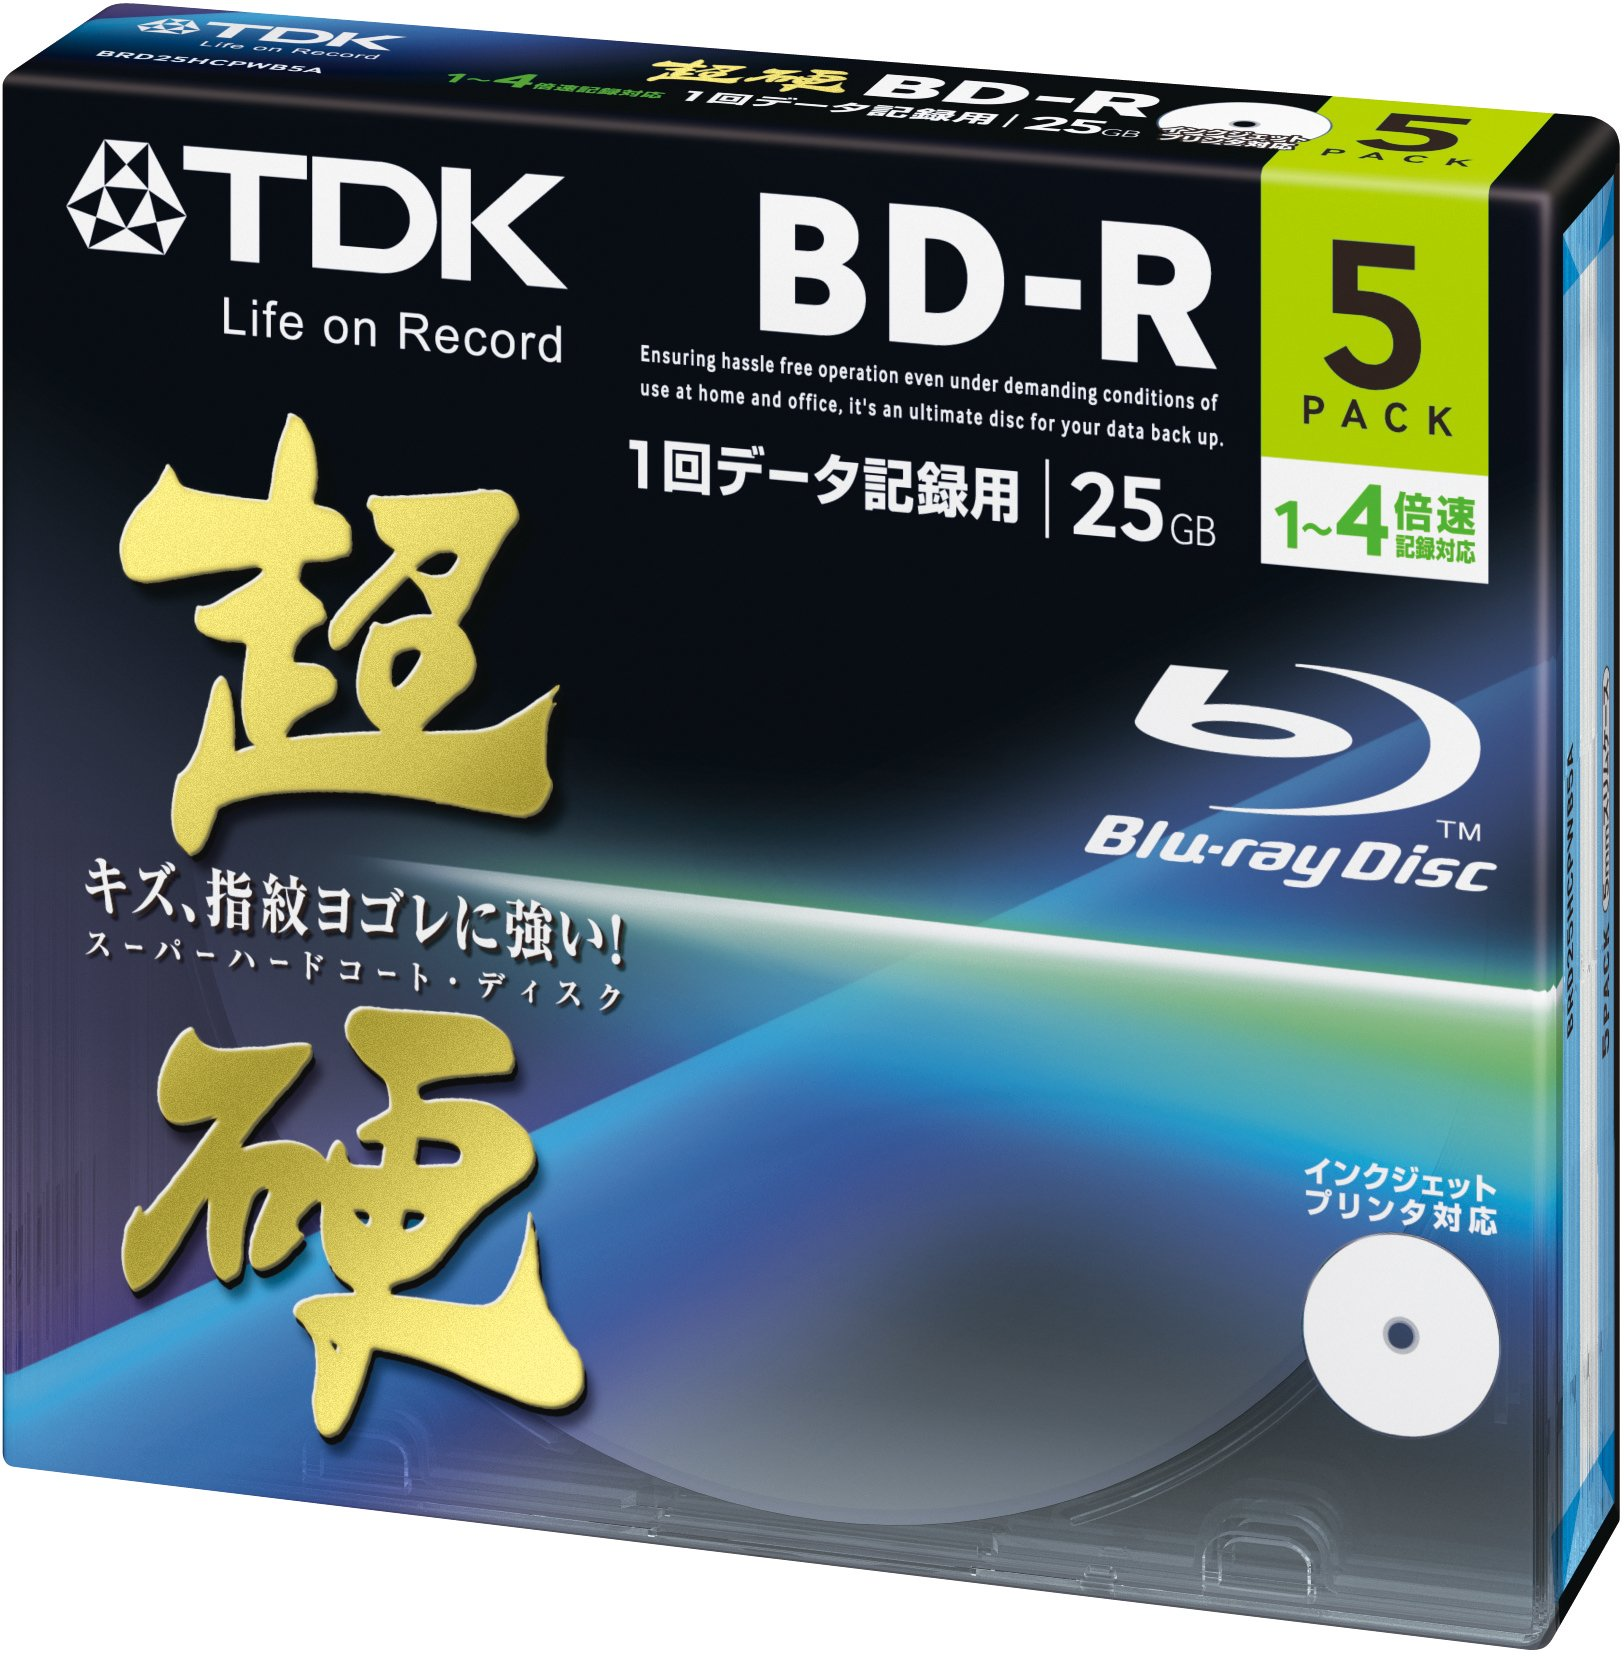 TDK Blu-ray BD-R Disk for PC Data | Super Hard-Coating | 25GB 4x Speed 5 Pack (Japanese Import)